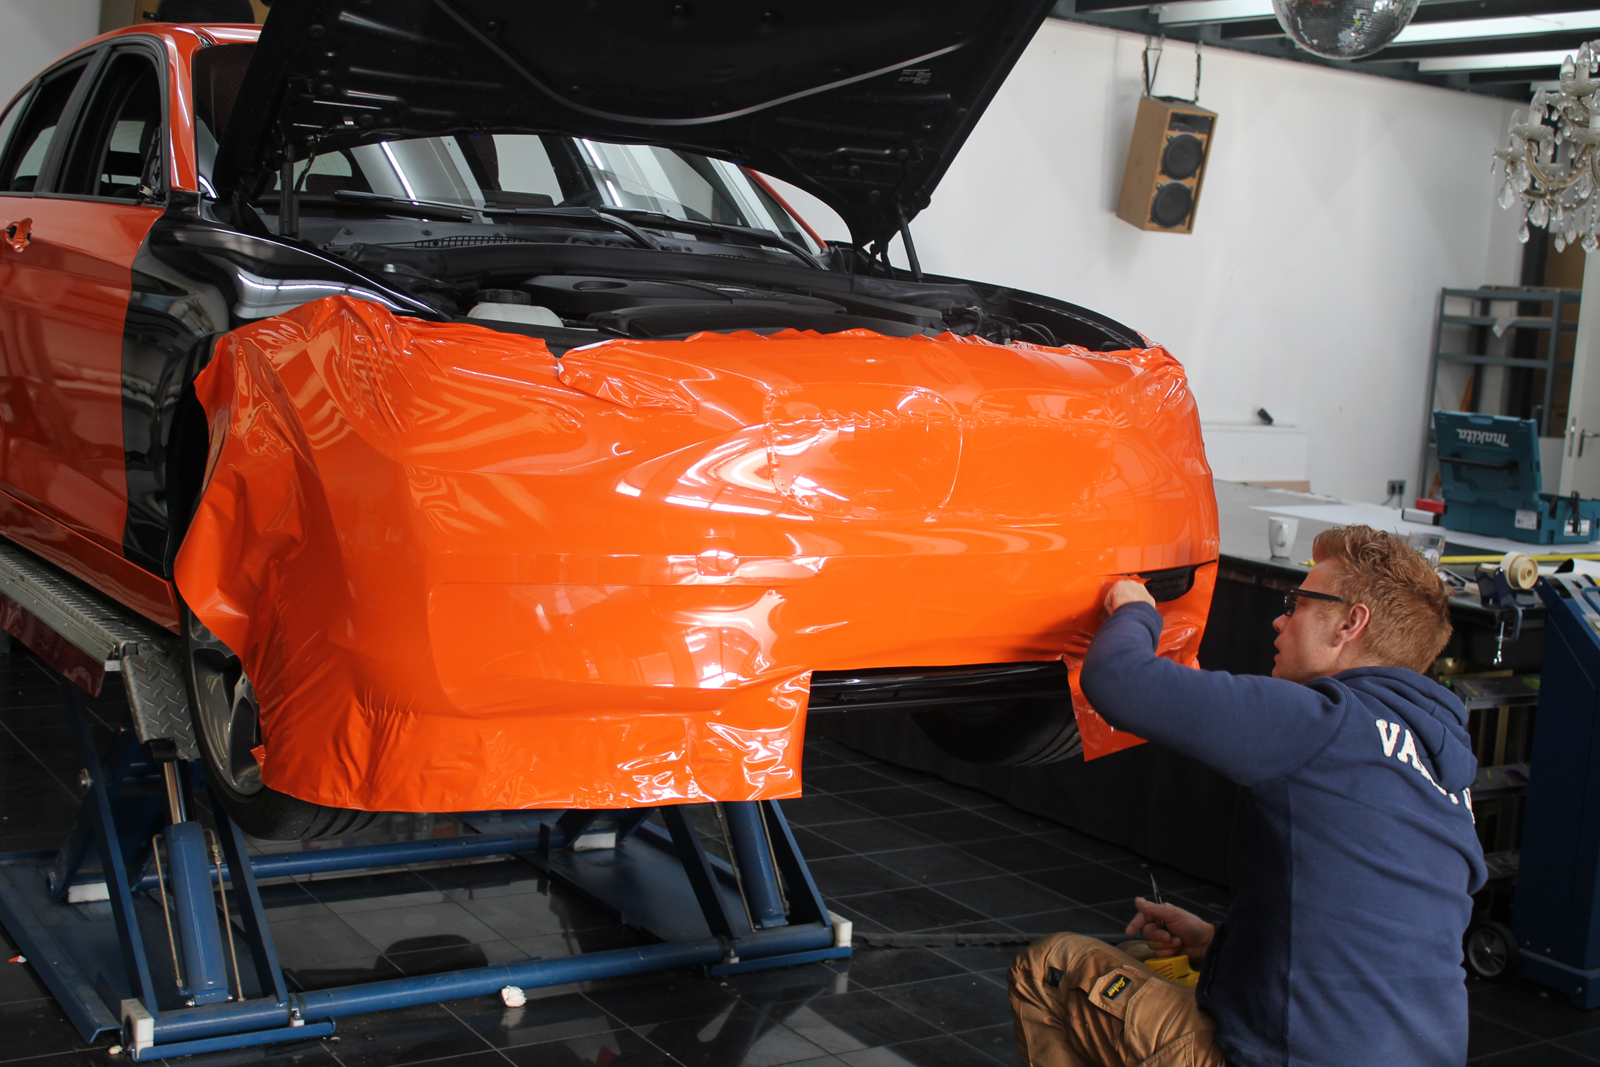 BMW_1ER_CAR-WRAPPING_ORANGE_GLANZ_FOLIE_BLUMEN_01